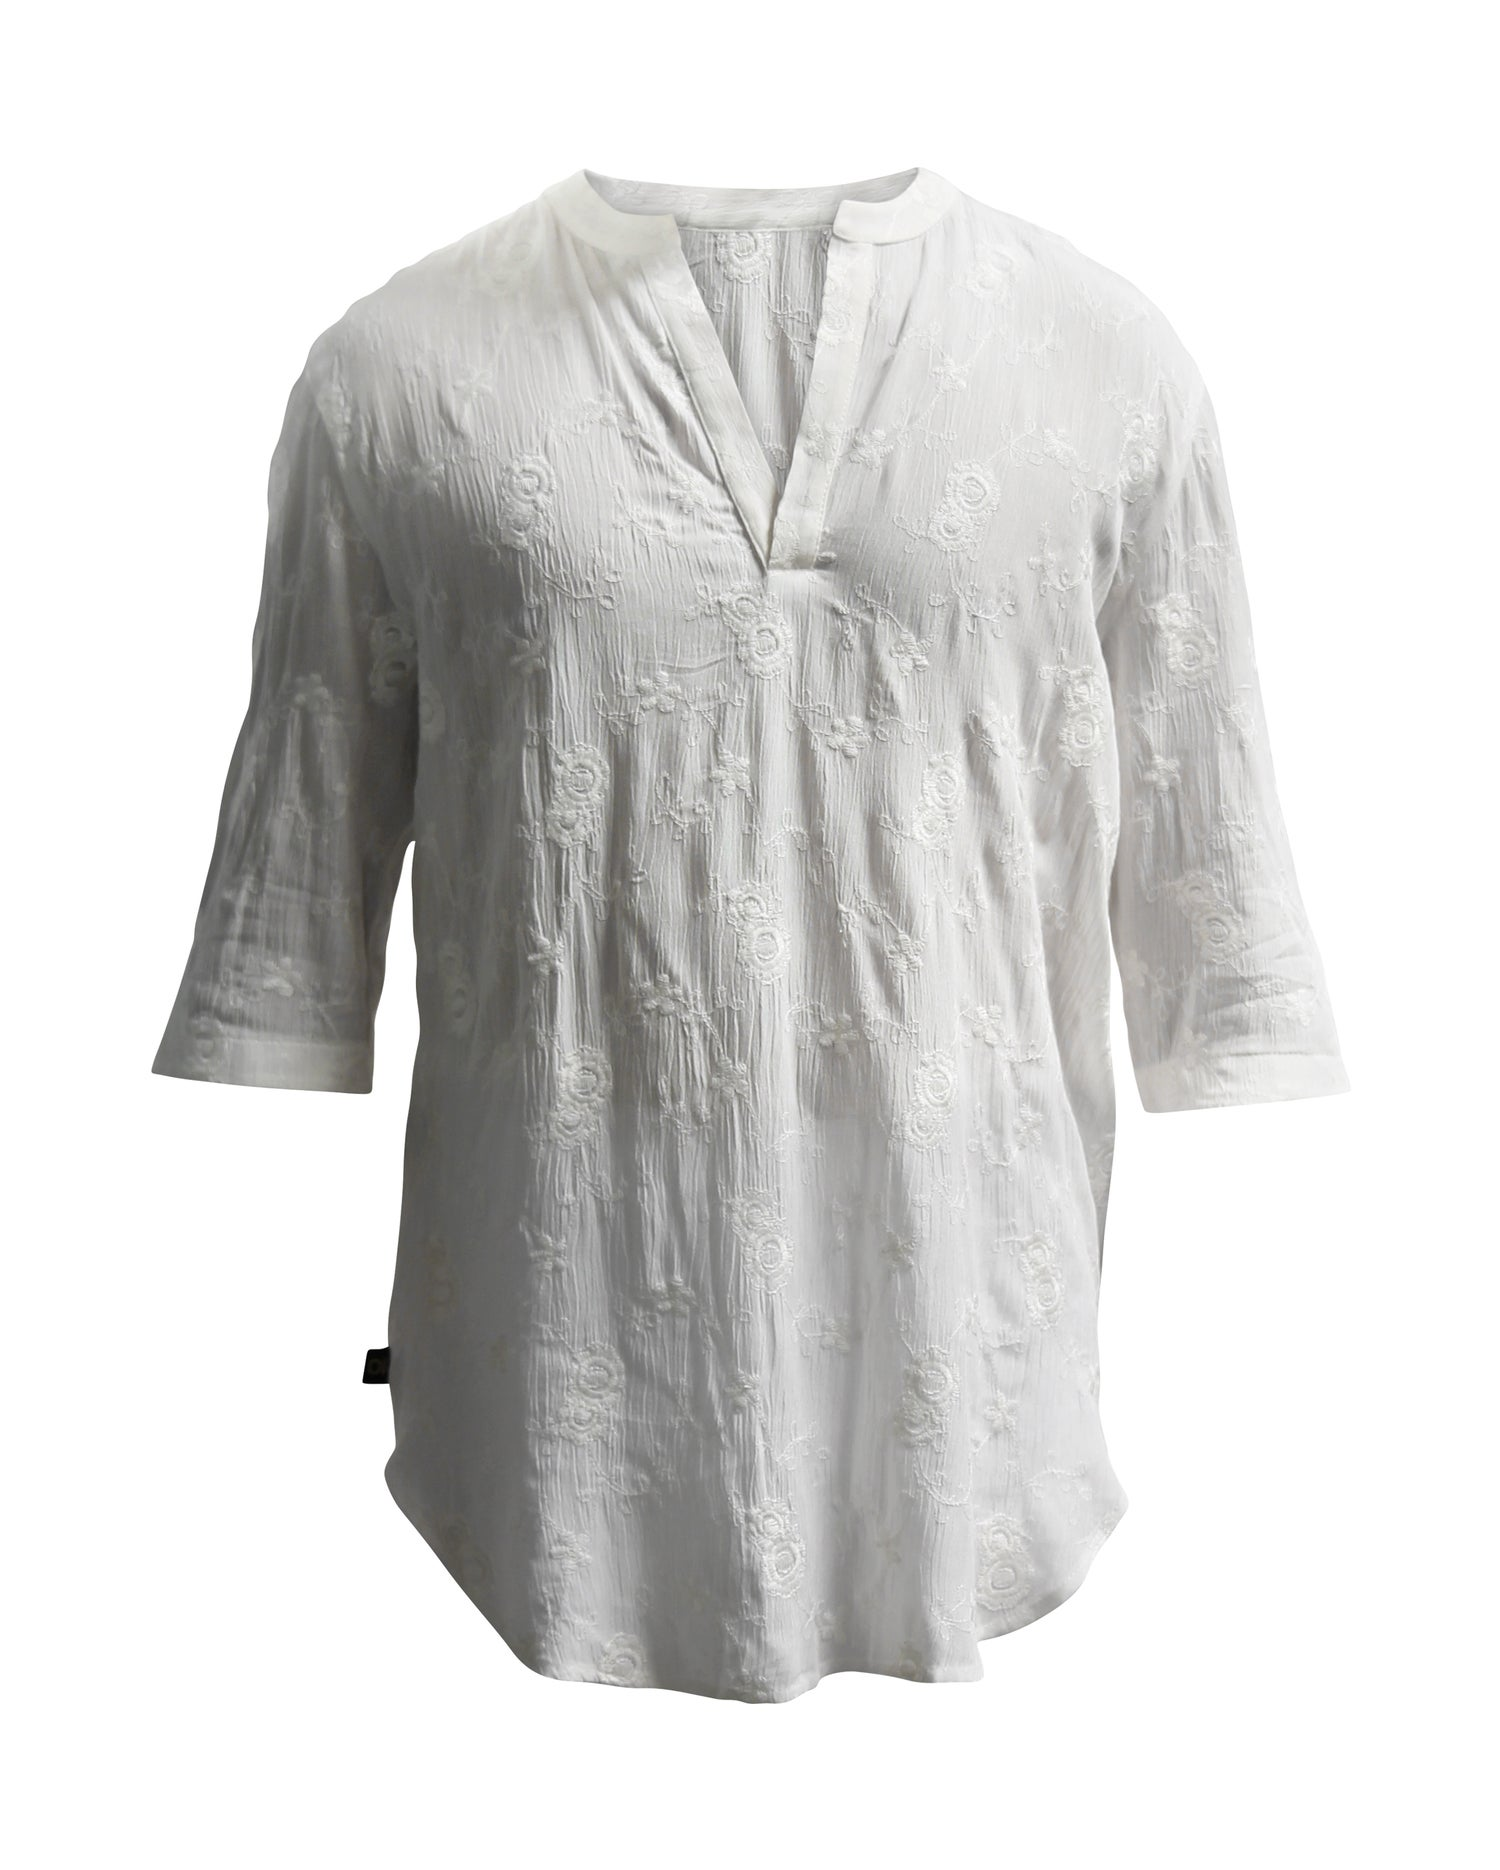 Image of Embroidered Boho Shirt